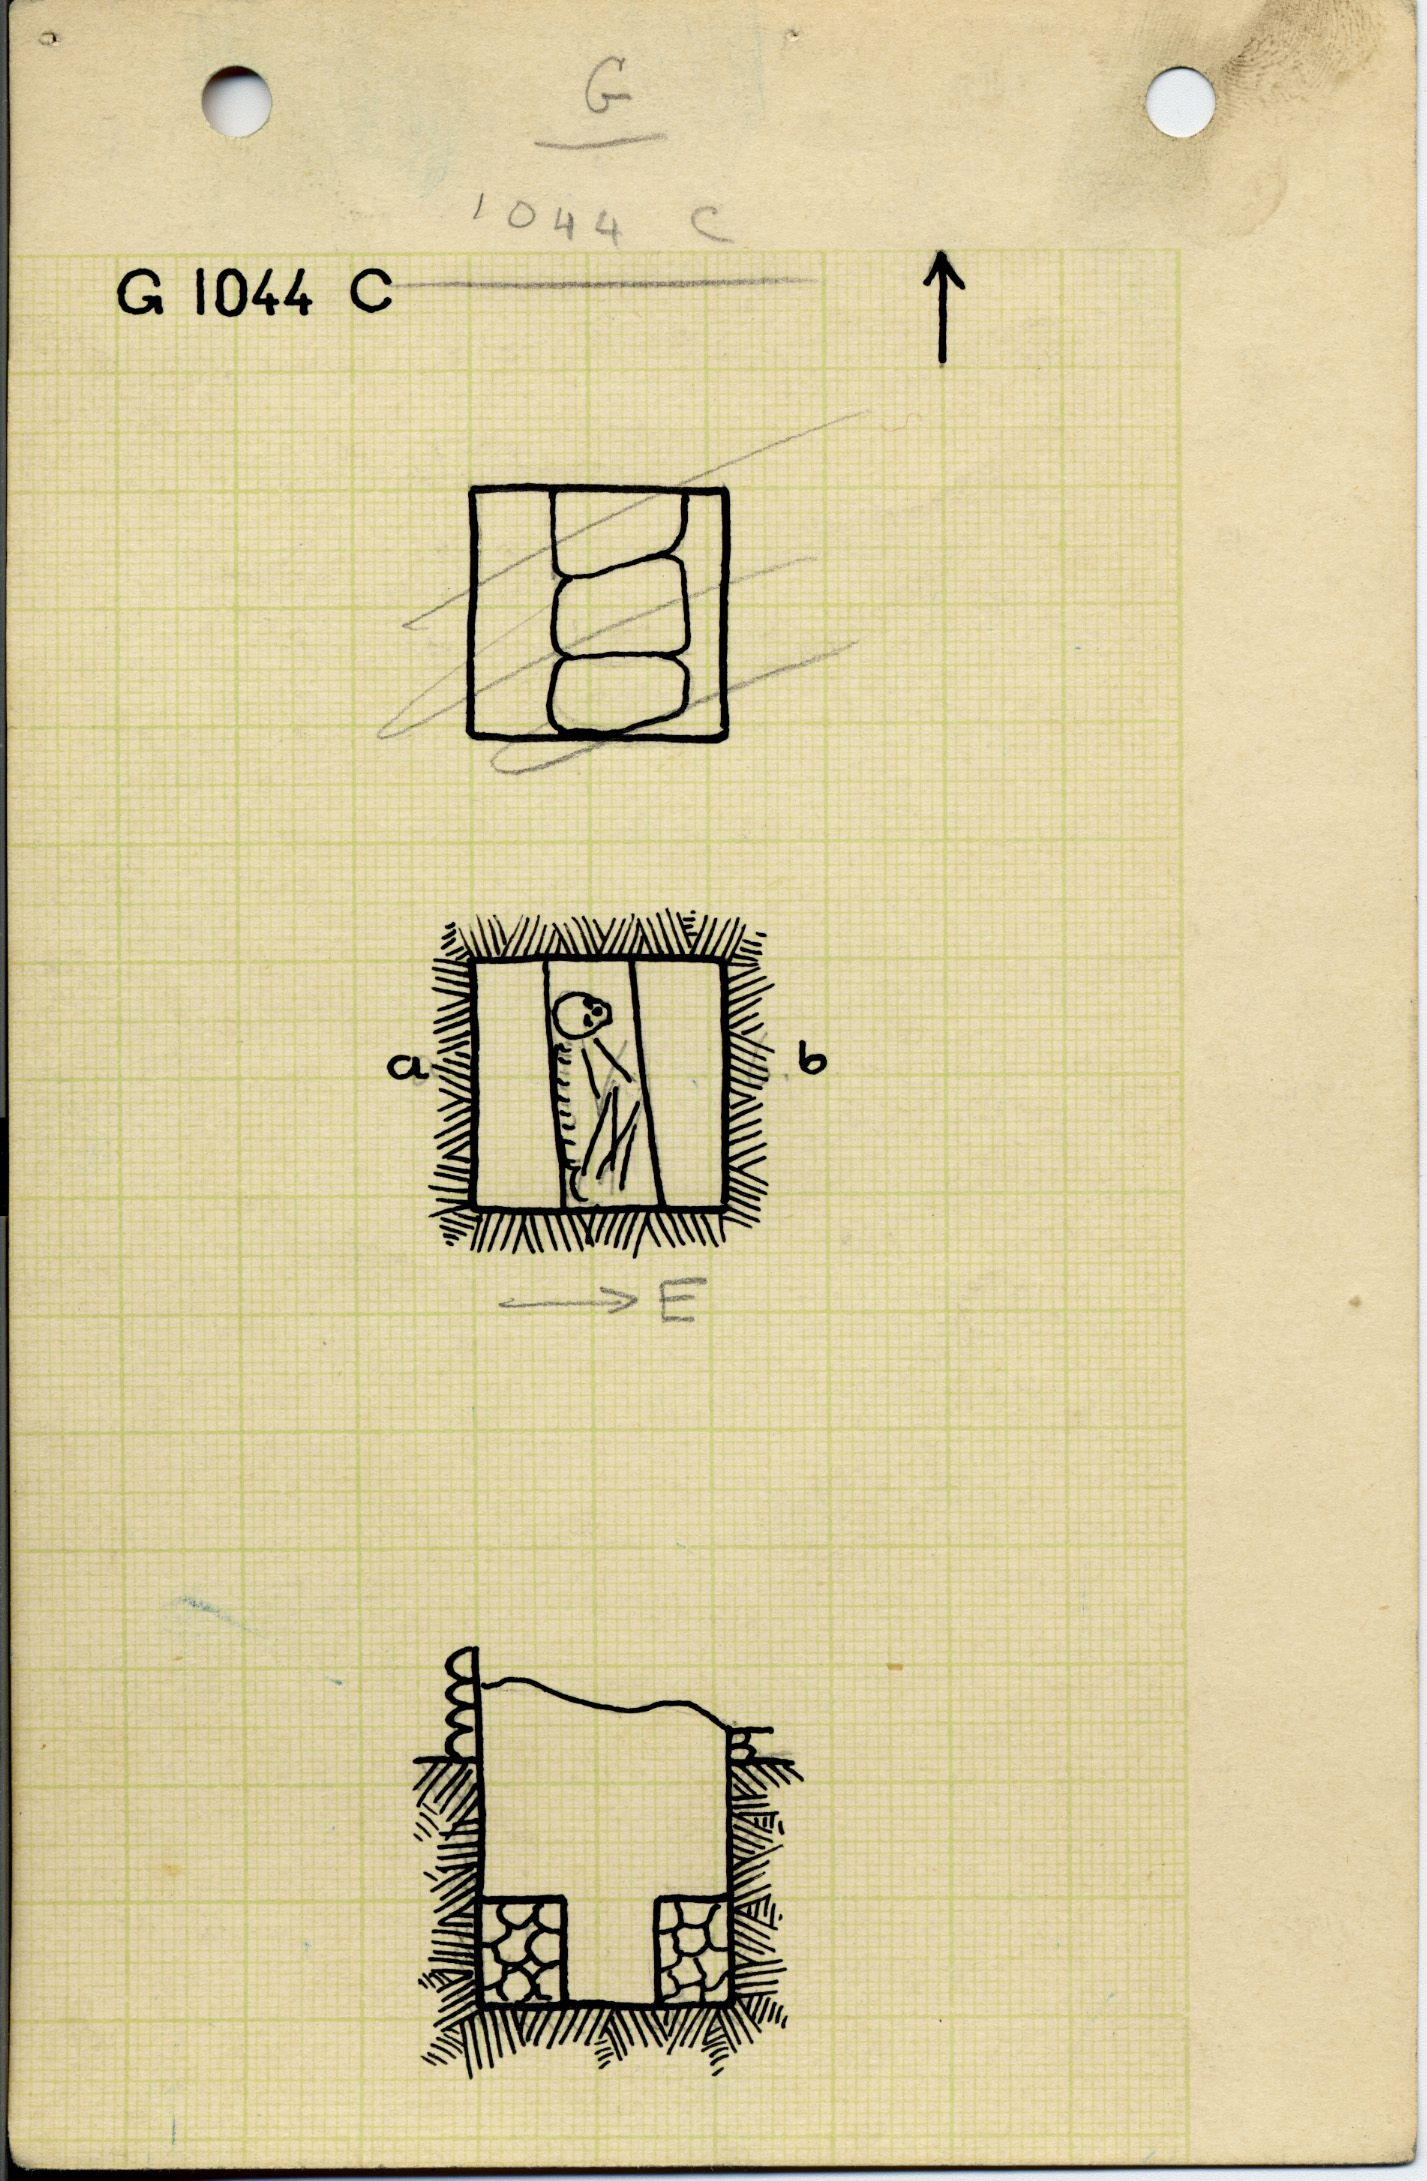 Maps and plans: G 1044, Shaft C